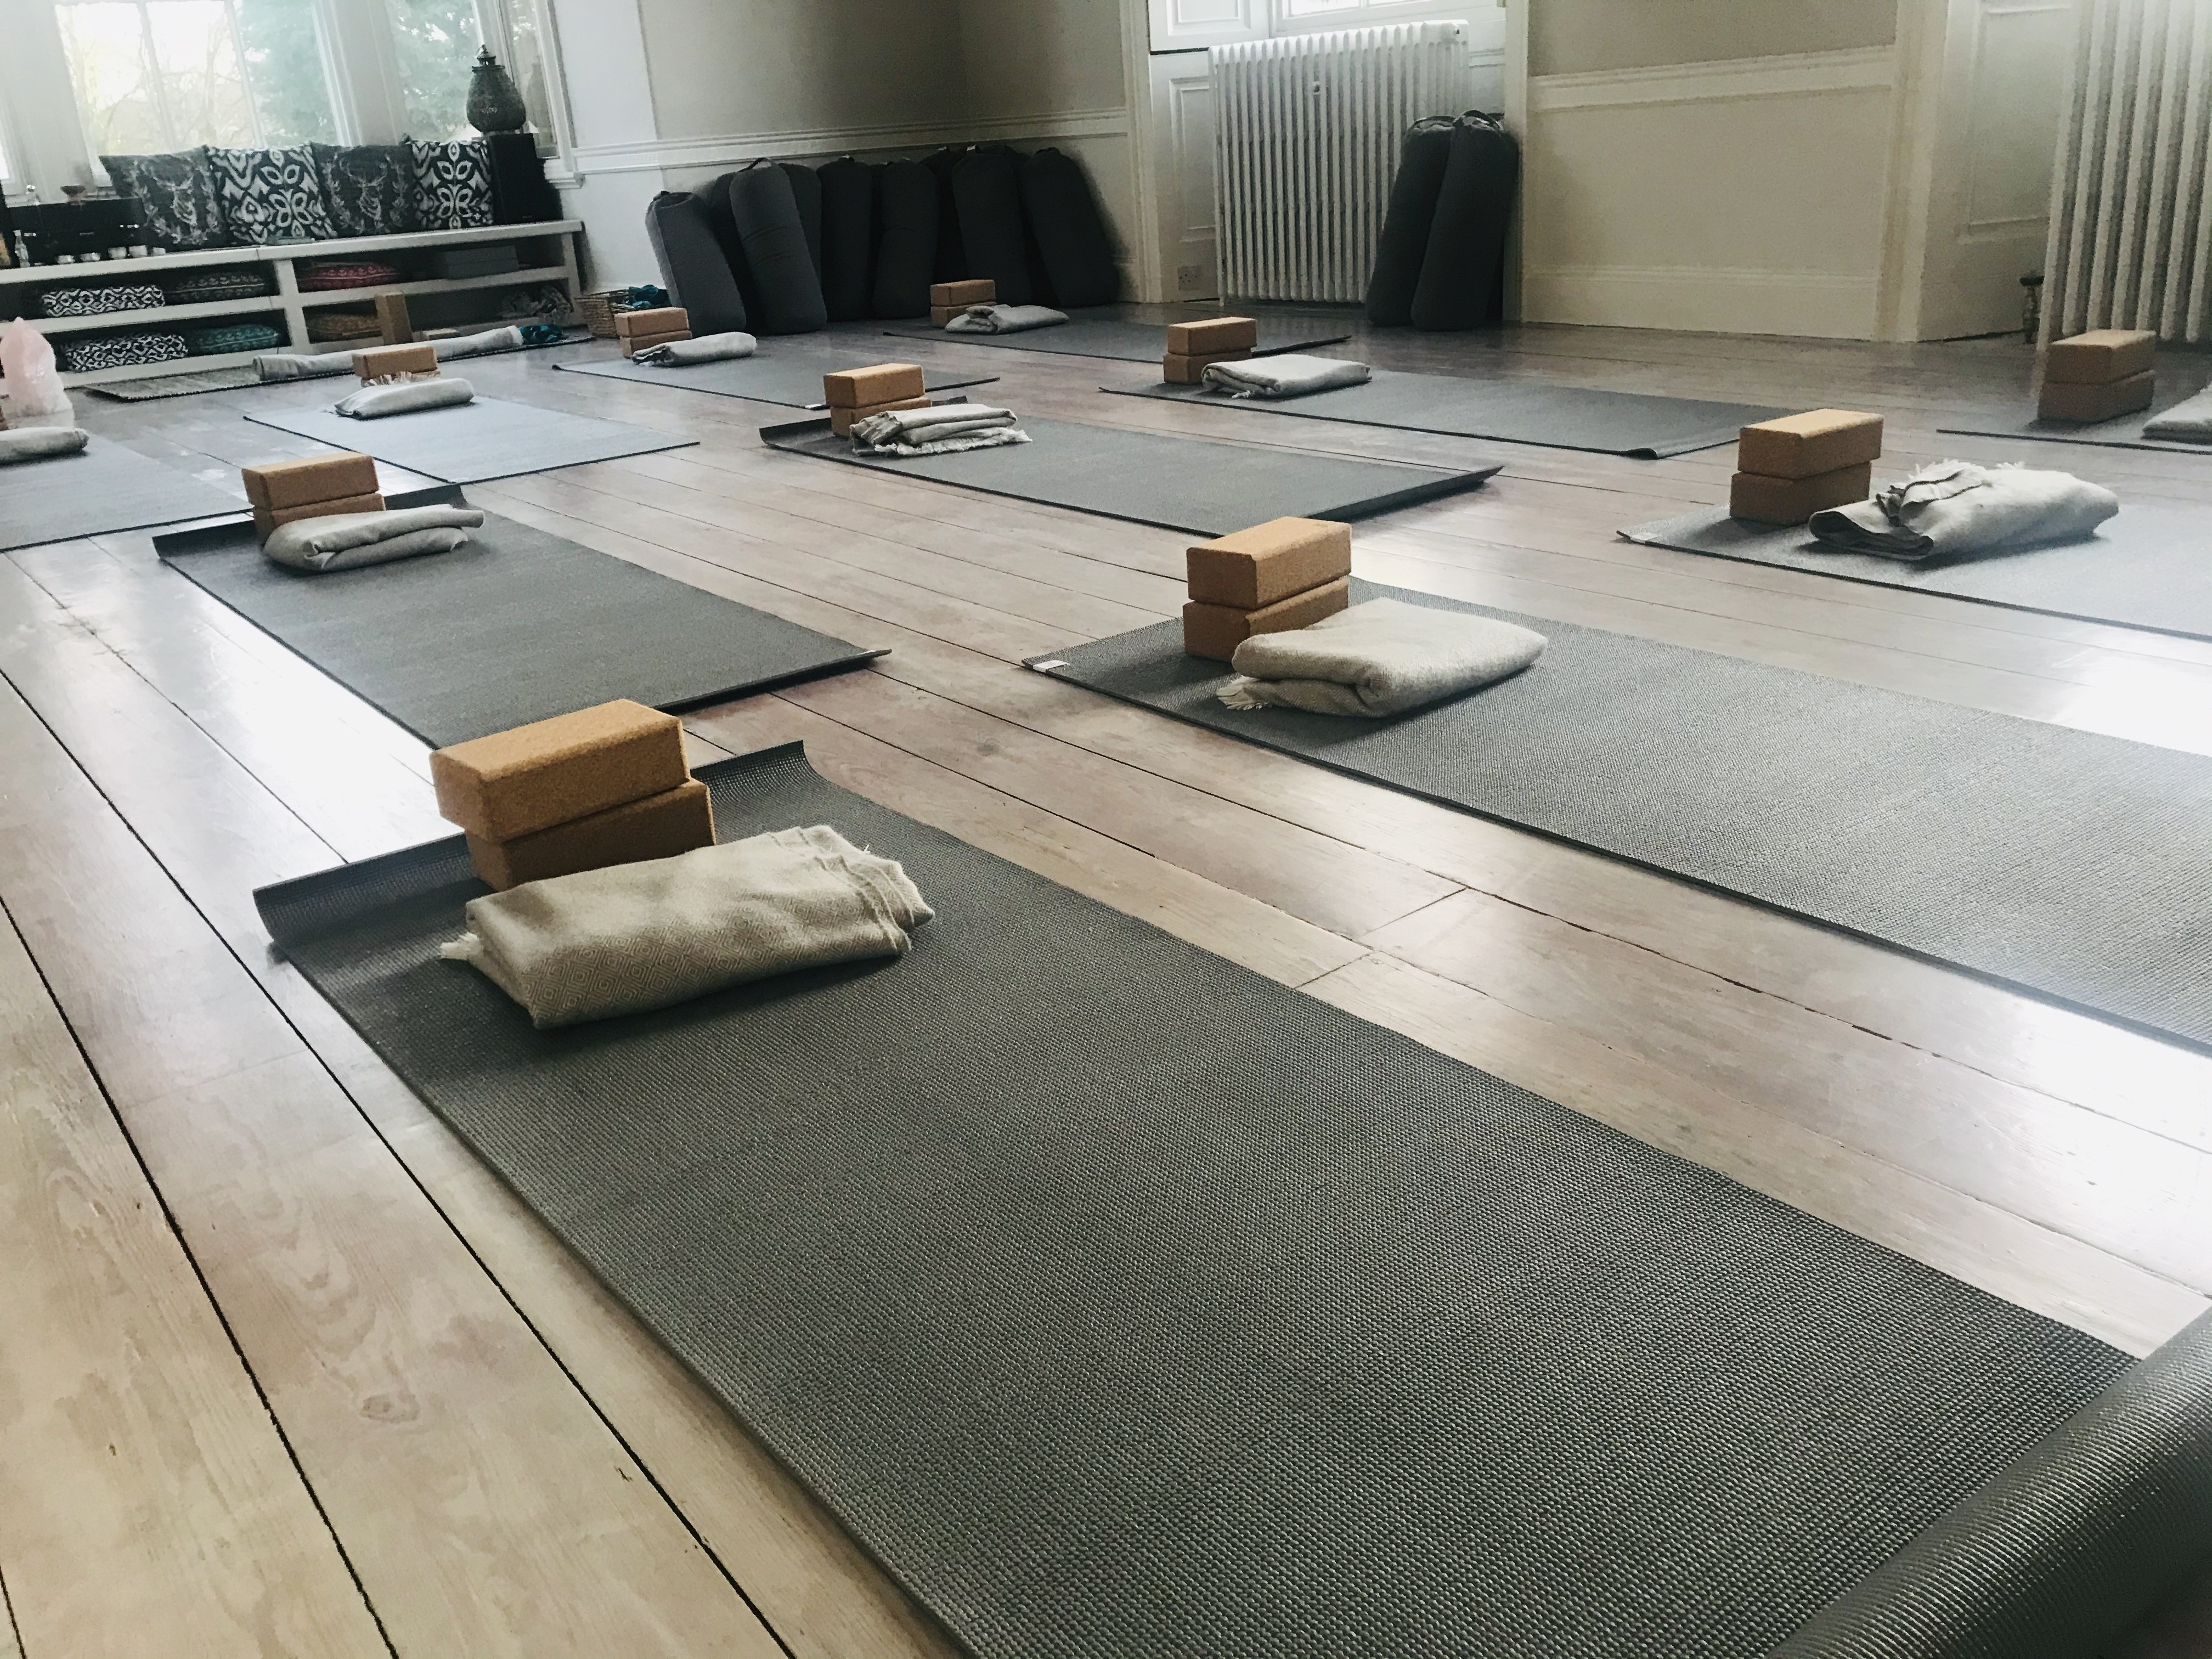 Yoga studio at YogaSpace Yorkshire yoga near me